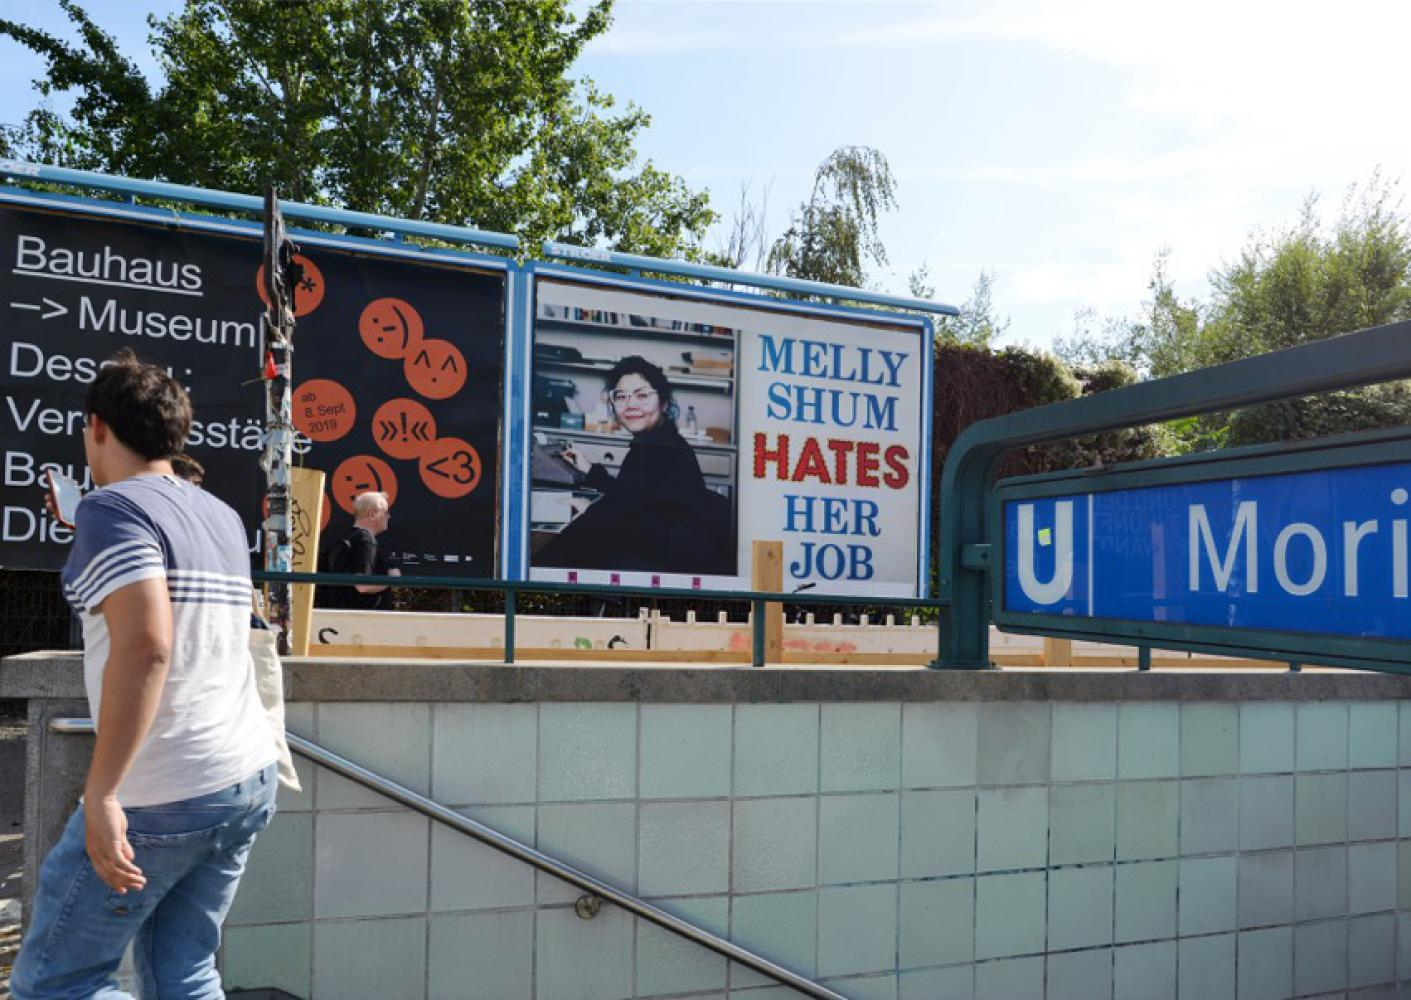 "Ken Lum ""Melly Shum hates her job"", 1989/2019, Billboard am Moritzplatz Berlin"